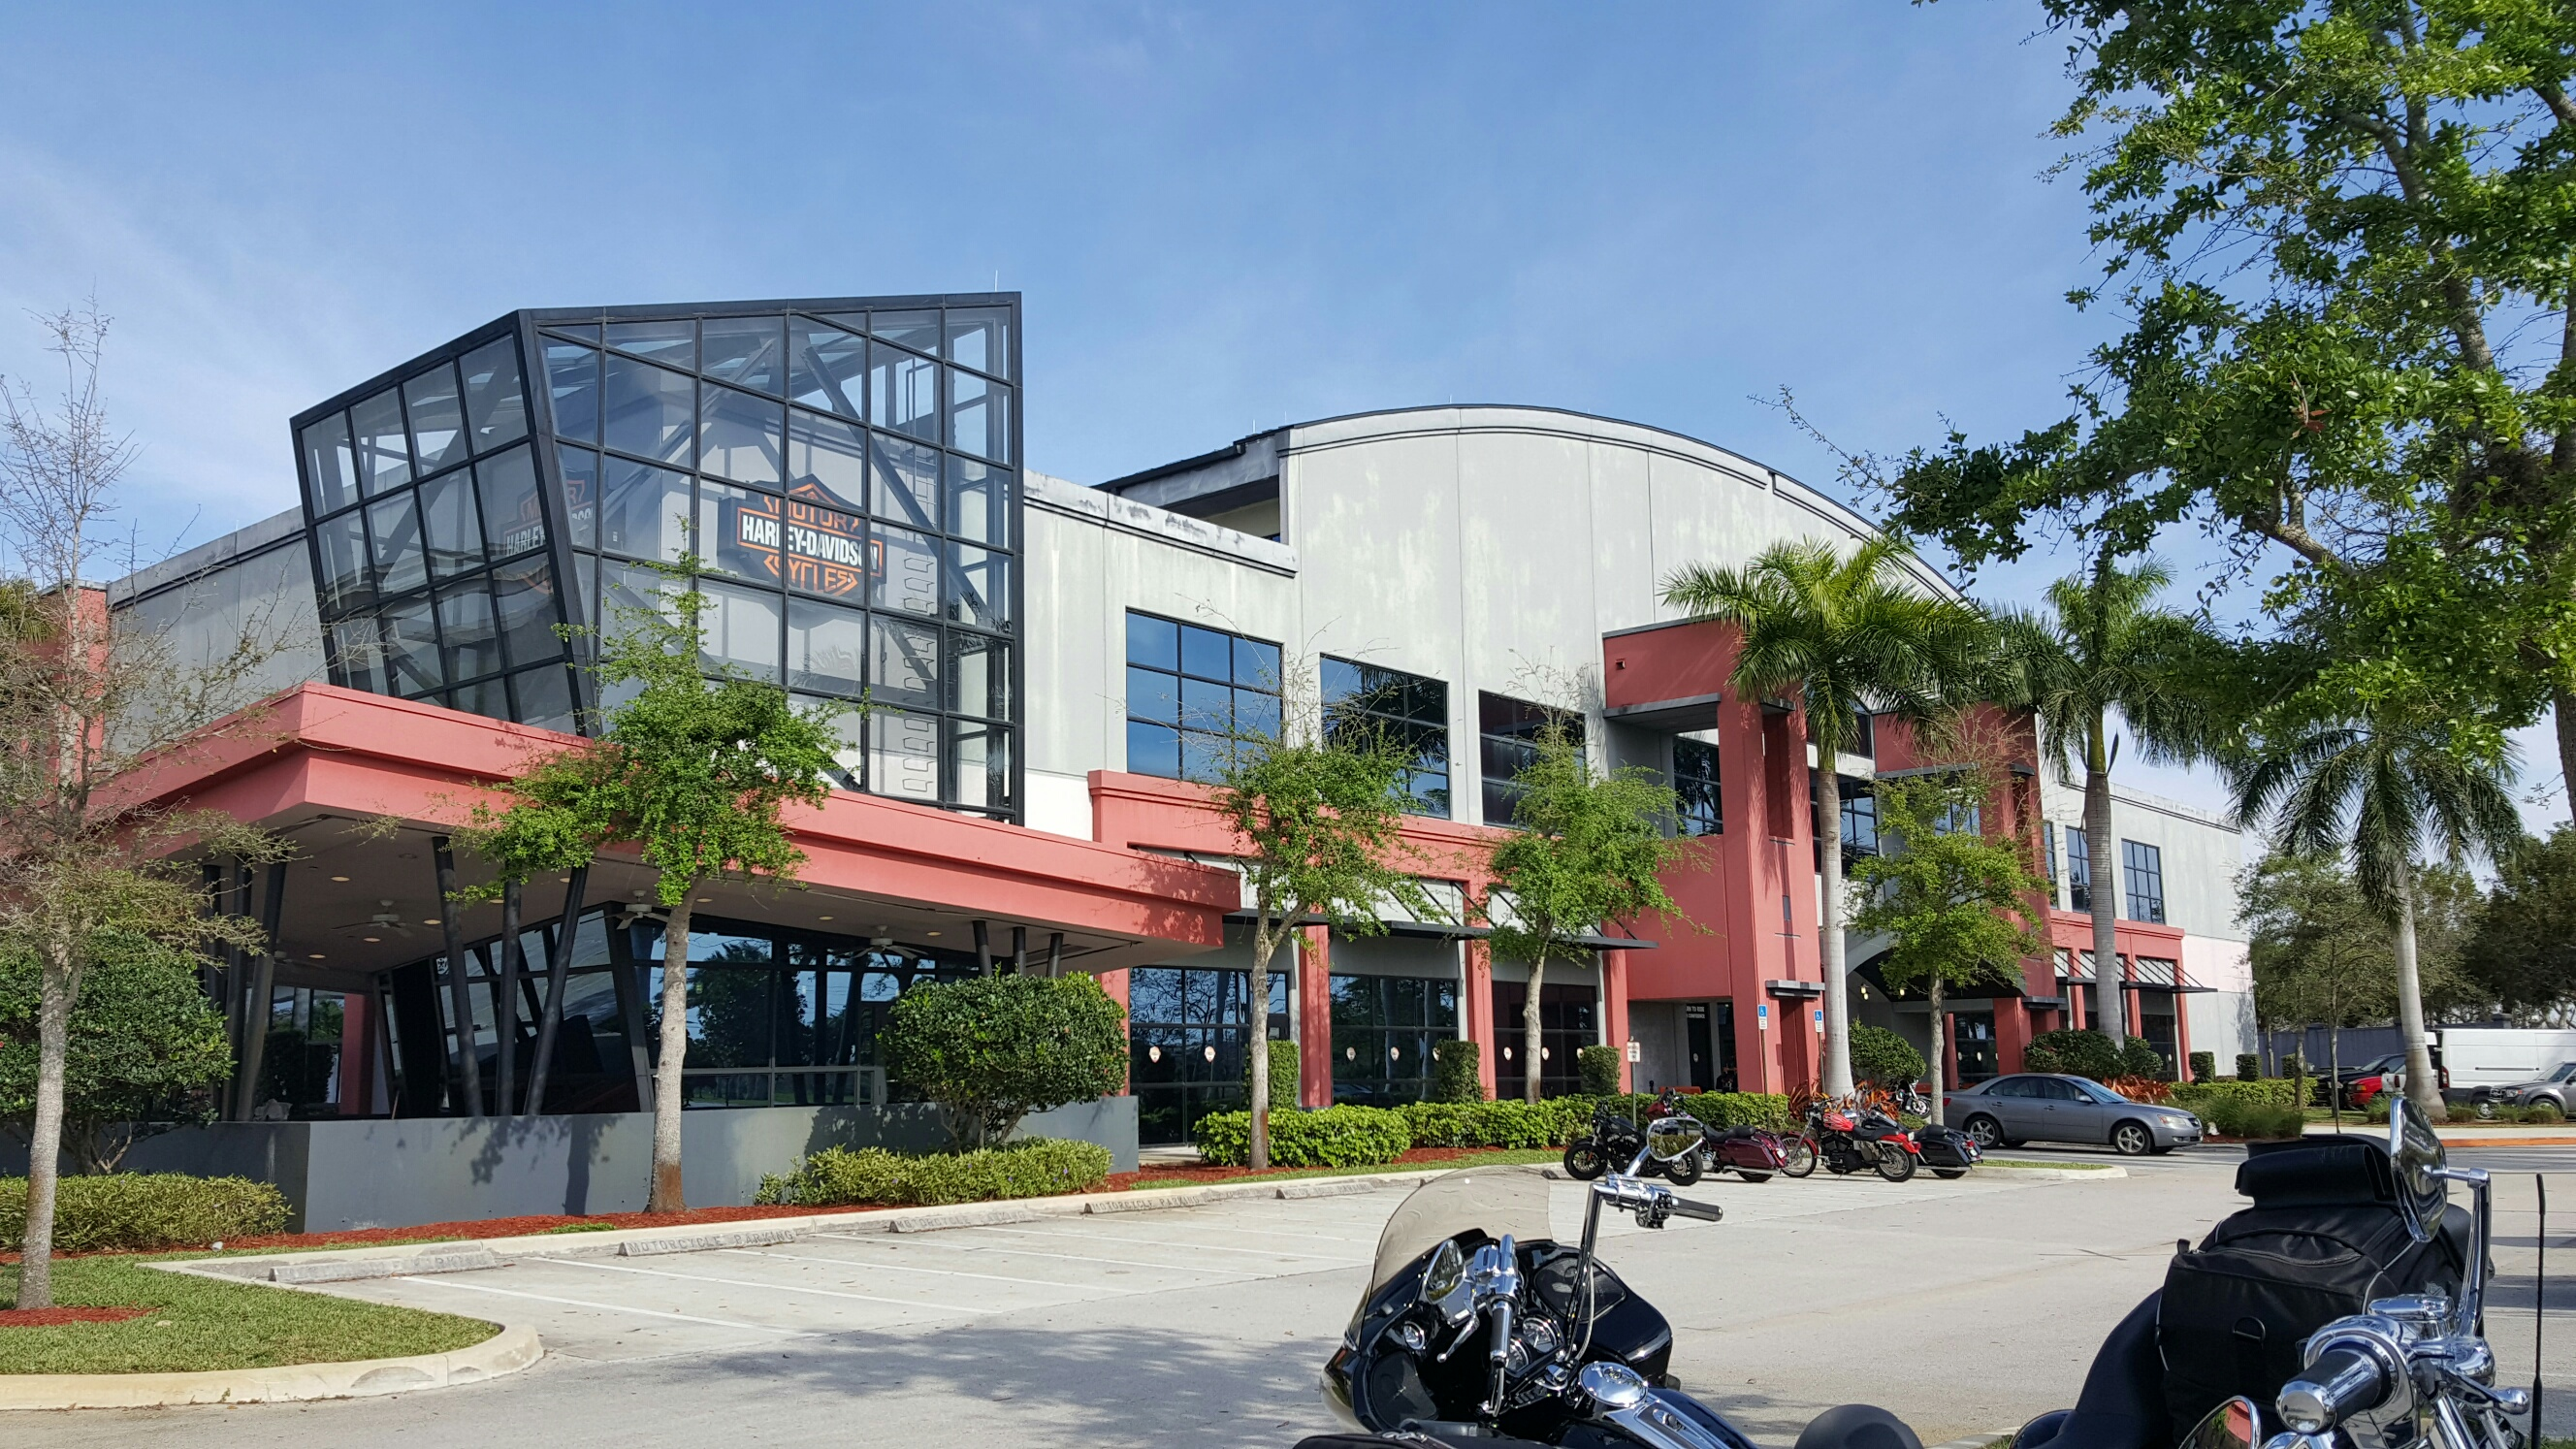 What To Look For In A Great Harley Dealership